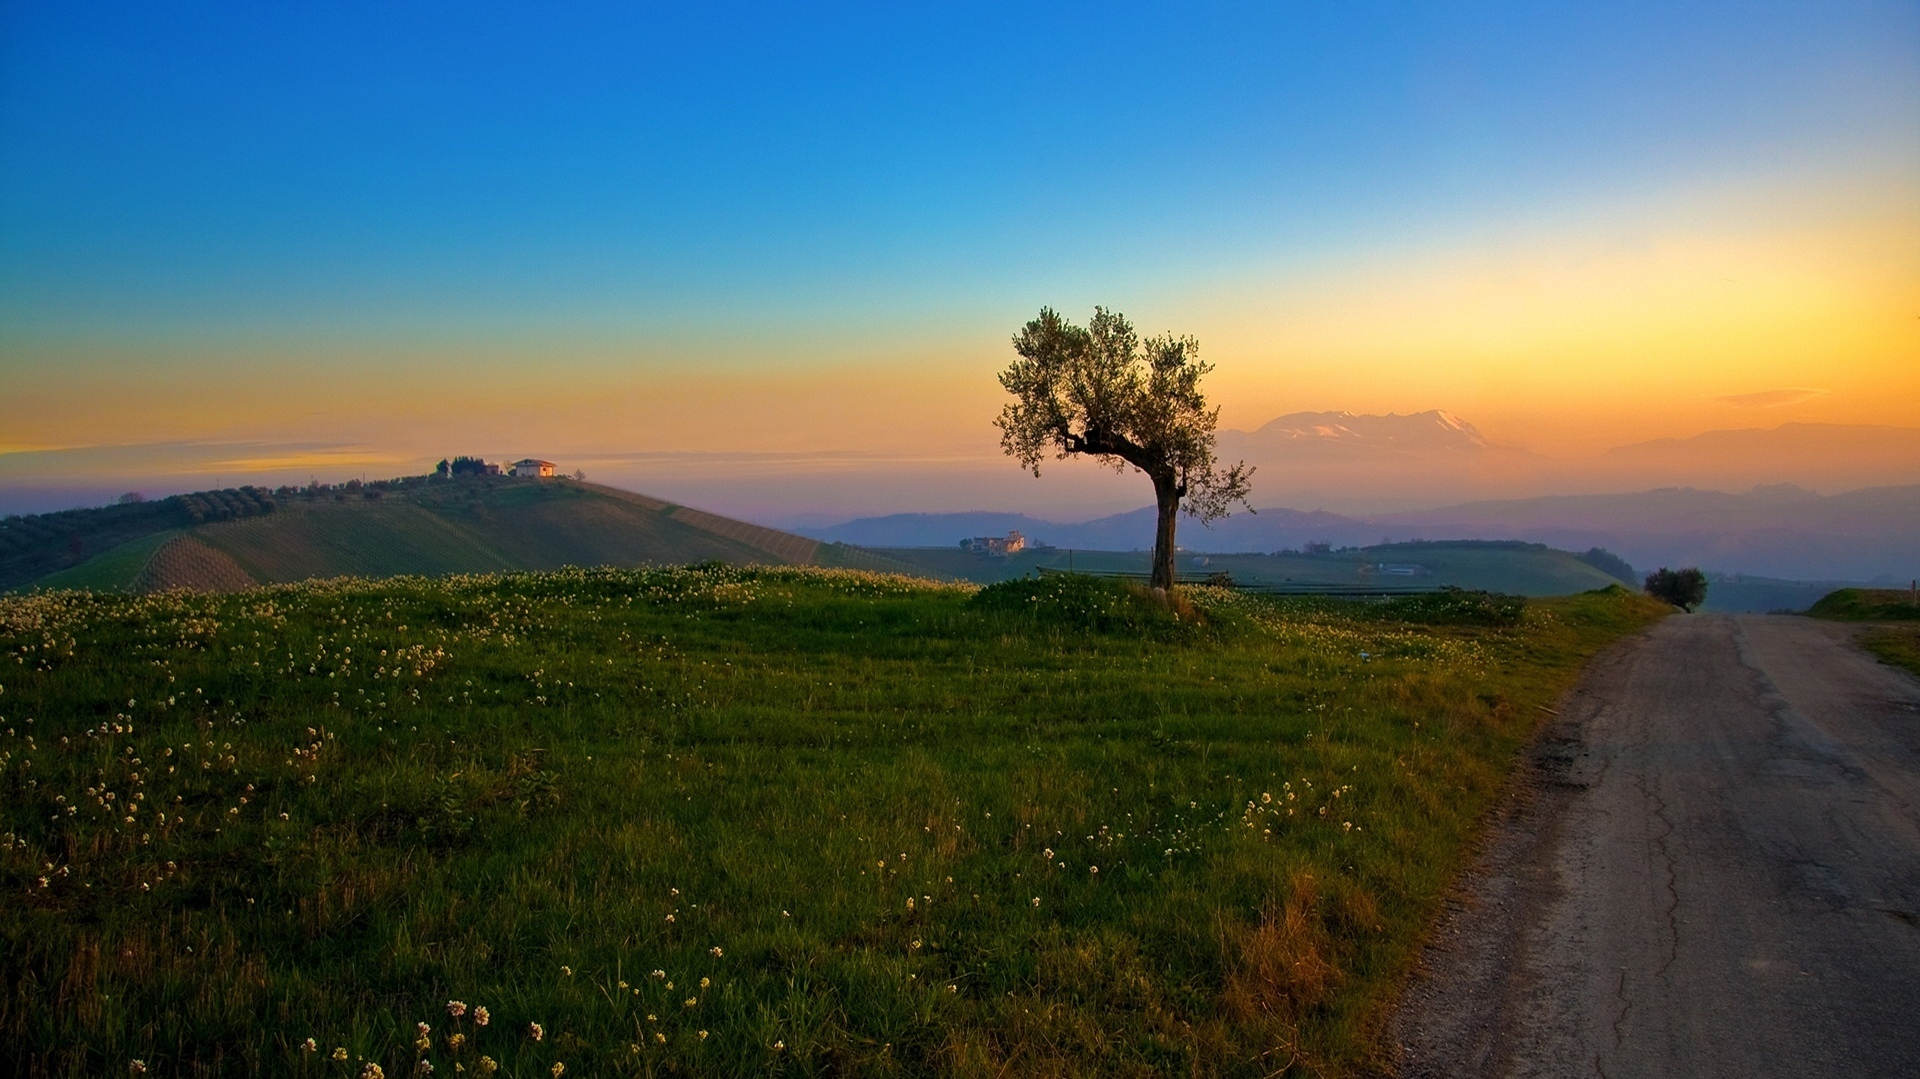 Scenery Pics images Spring and summer scenery HD wallpaper and background photos 22175433